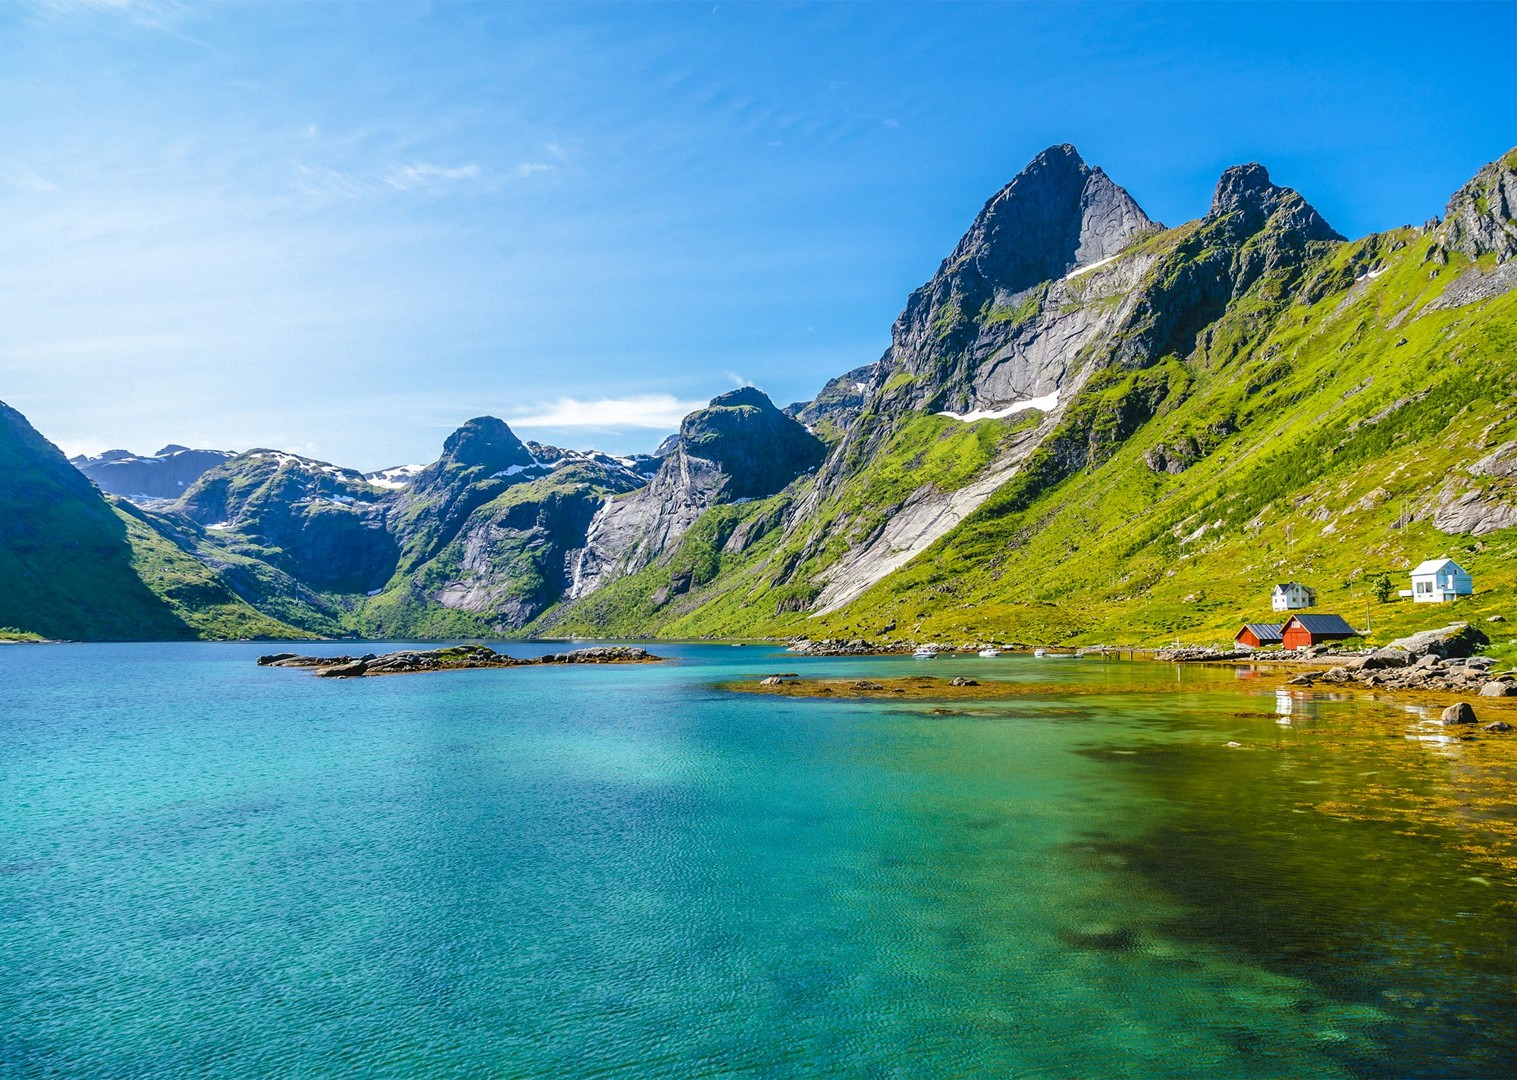 quaint-island-rorbus-local-accommodation-immerse-culture-by-bike-norway.jpg - Norway - Lofoten Islands - Self-Guided Leisure Cycling Holiday - Leisure Cycling